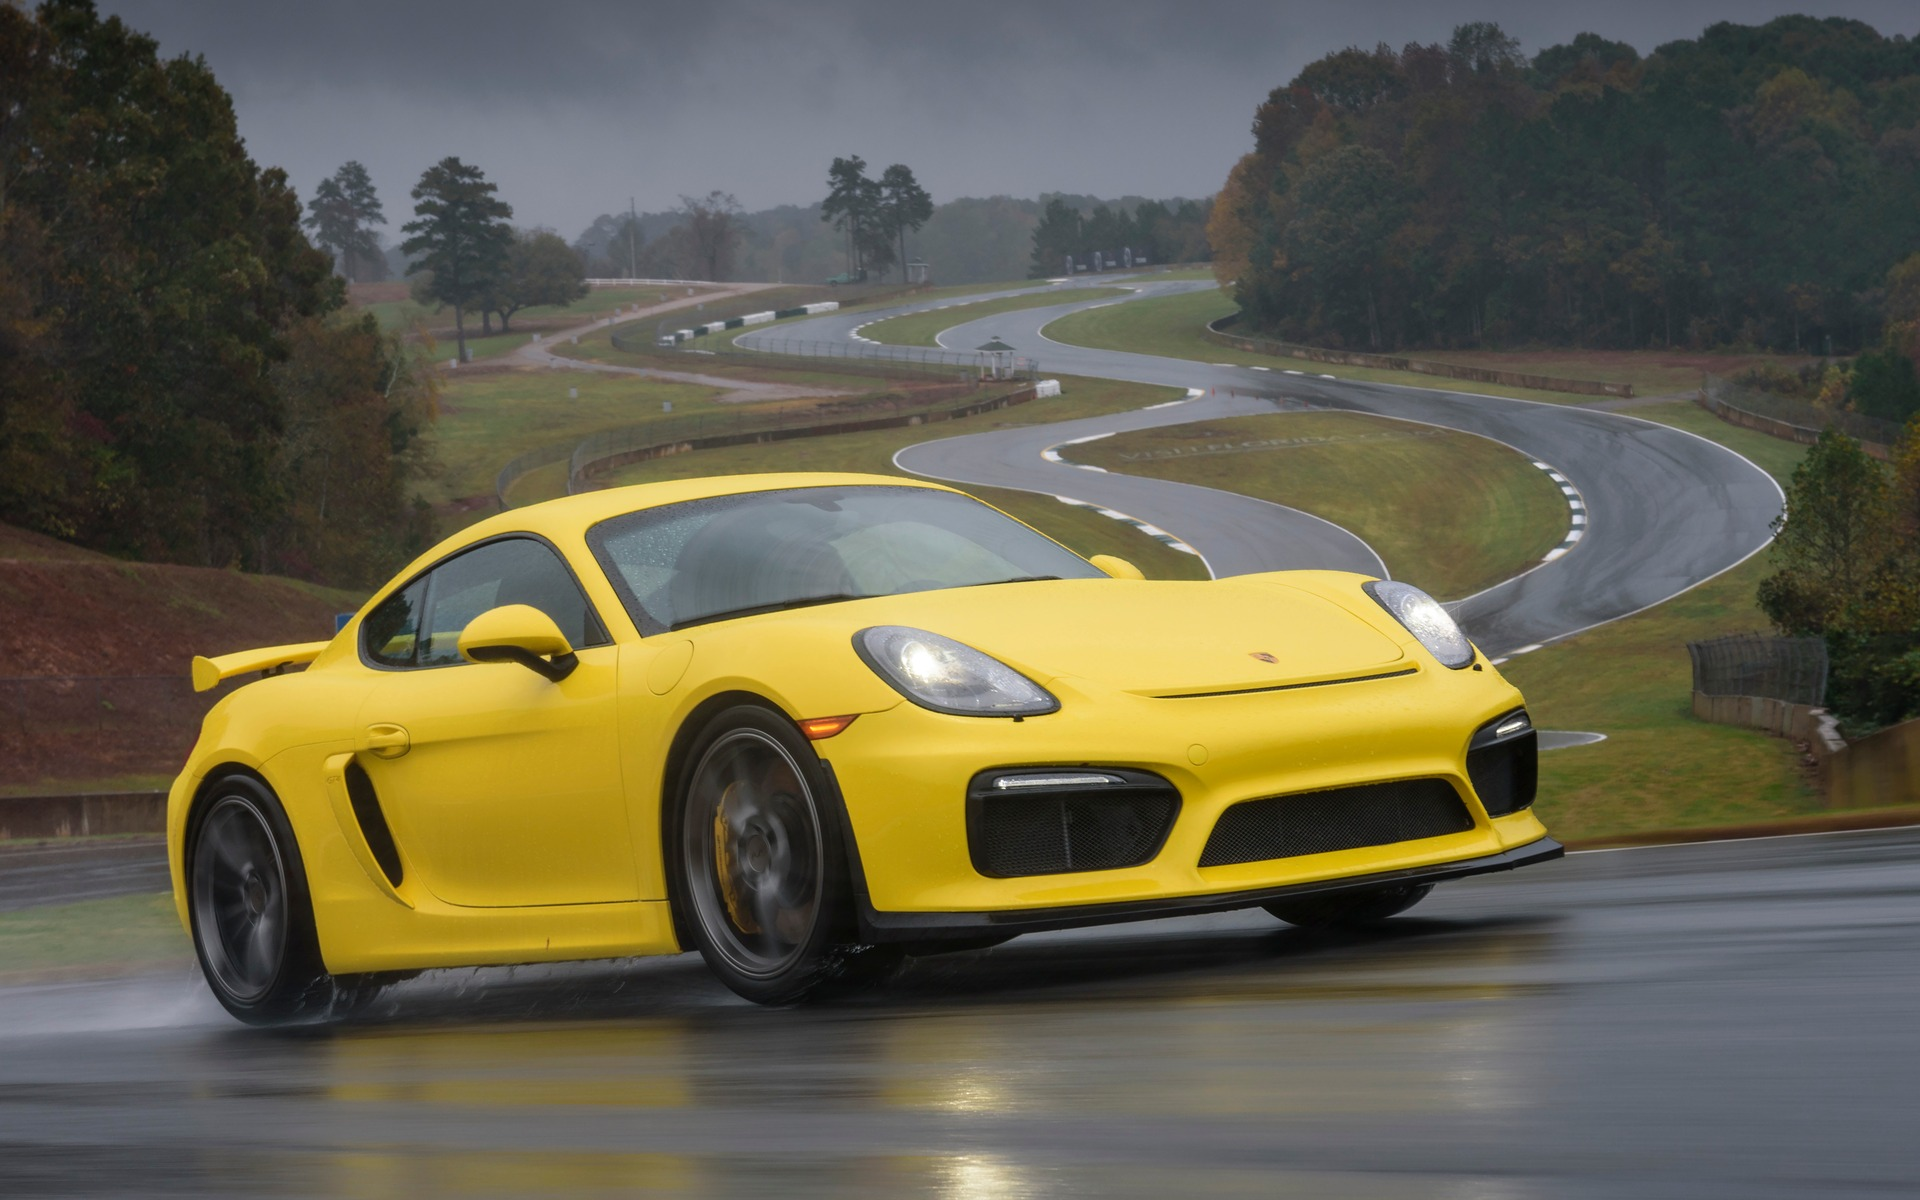 2016 Porsche Cayman GT4 And 911 GT3 RS: Track Bred - The Car Guide